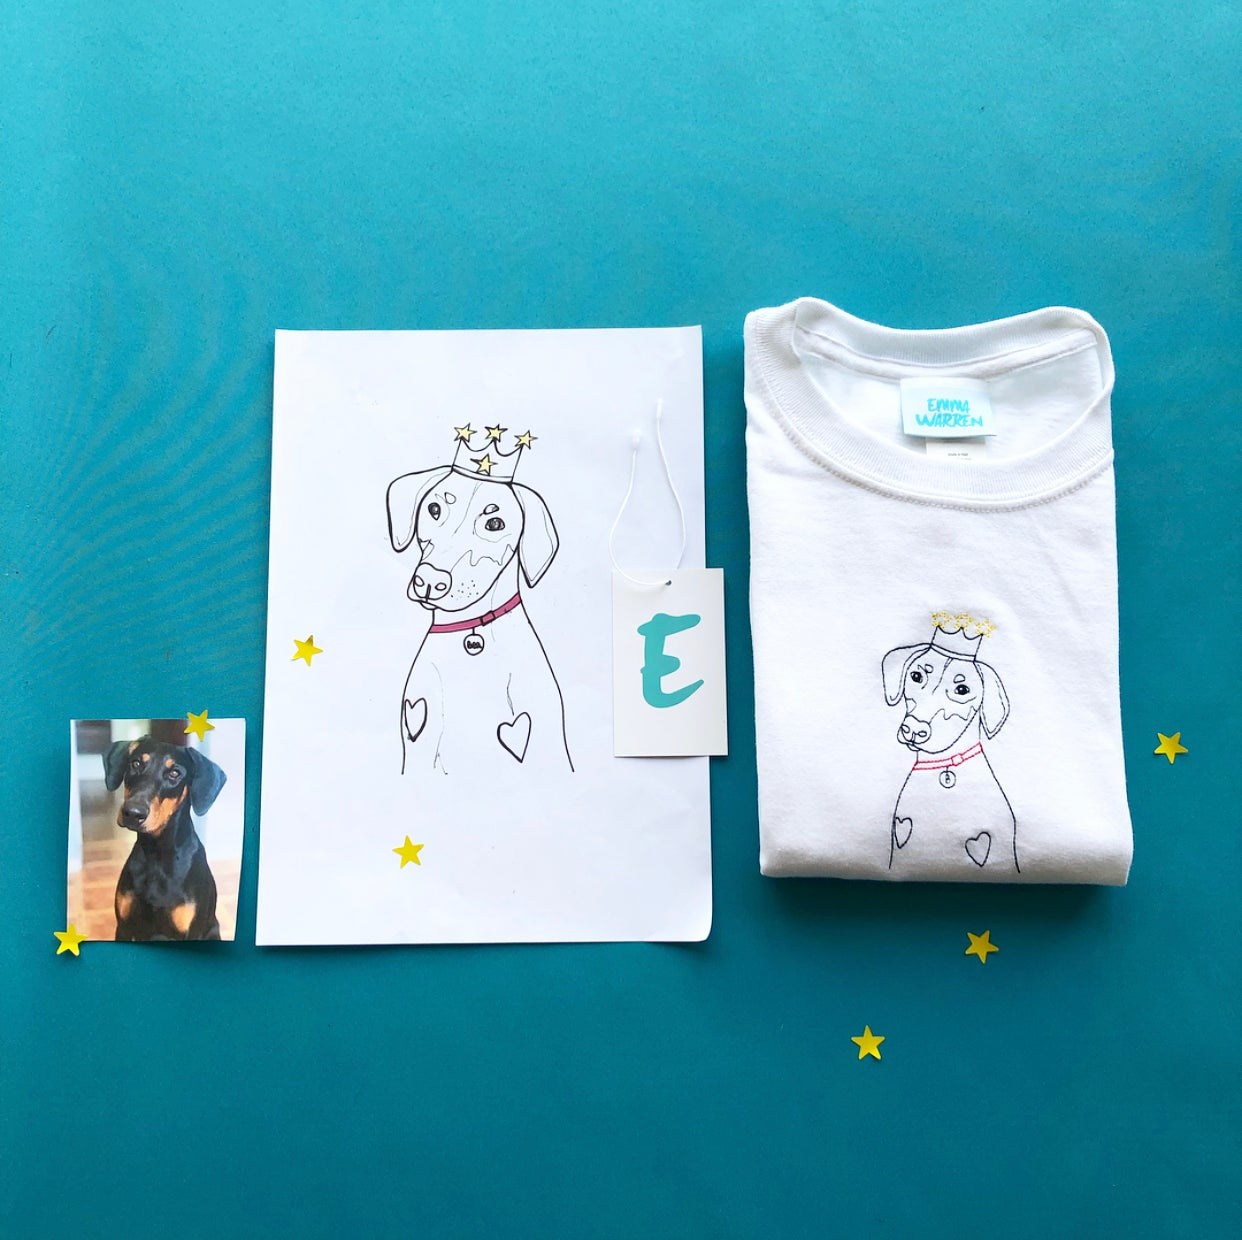 t-shirt with queen bea embroidery